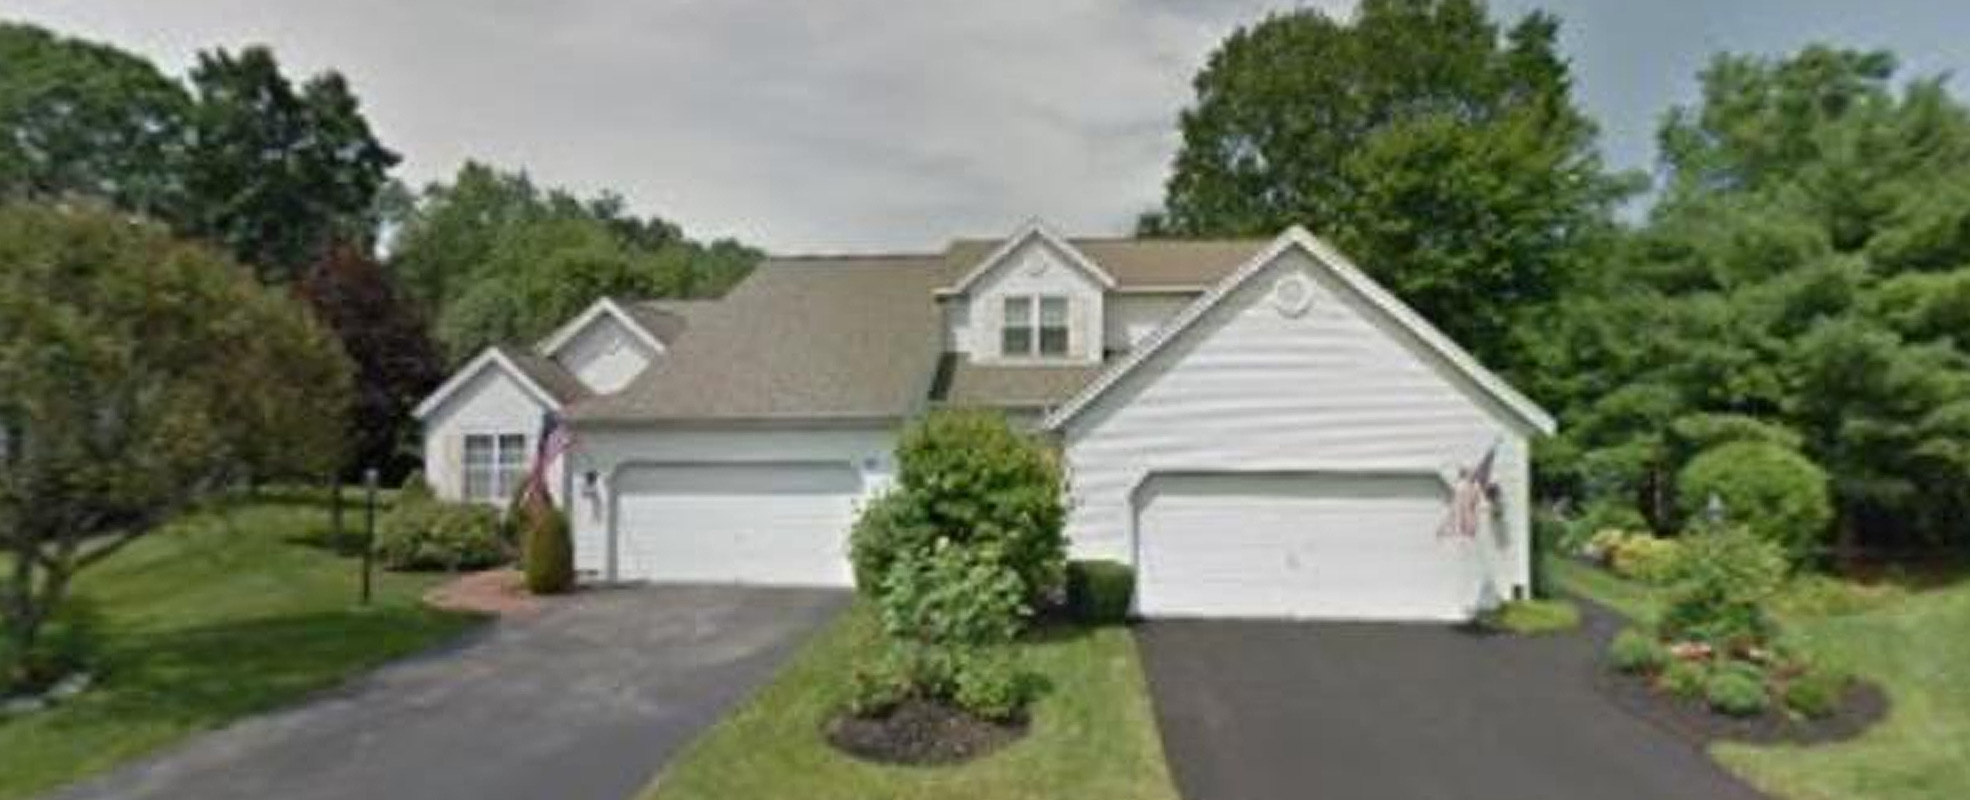 Featured: 21 Hyland Ct, Troy, NY 12182